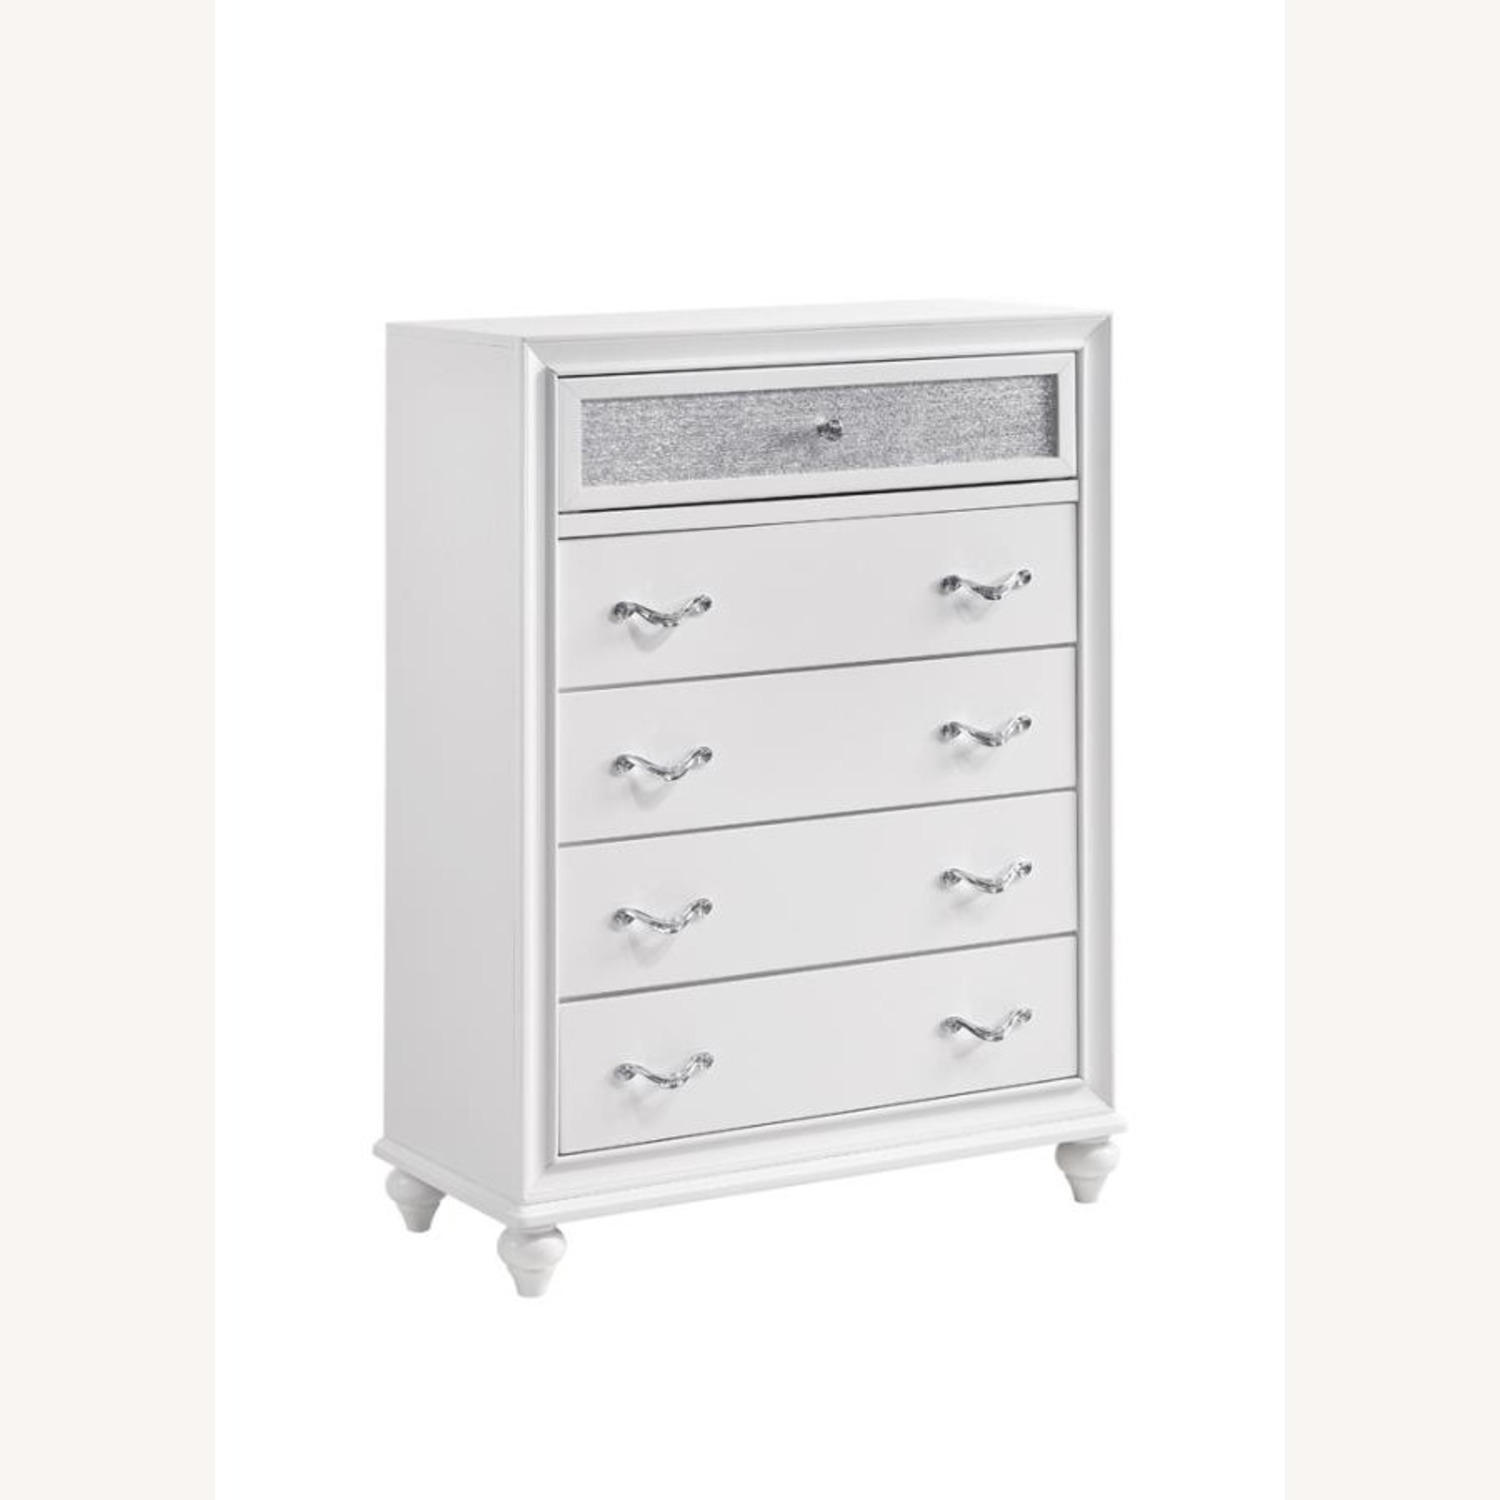 Chest In White W/ Glittering Drawer Fronts - image-0